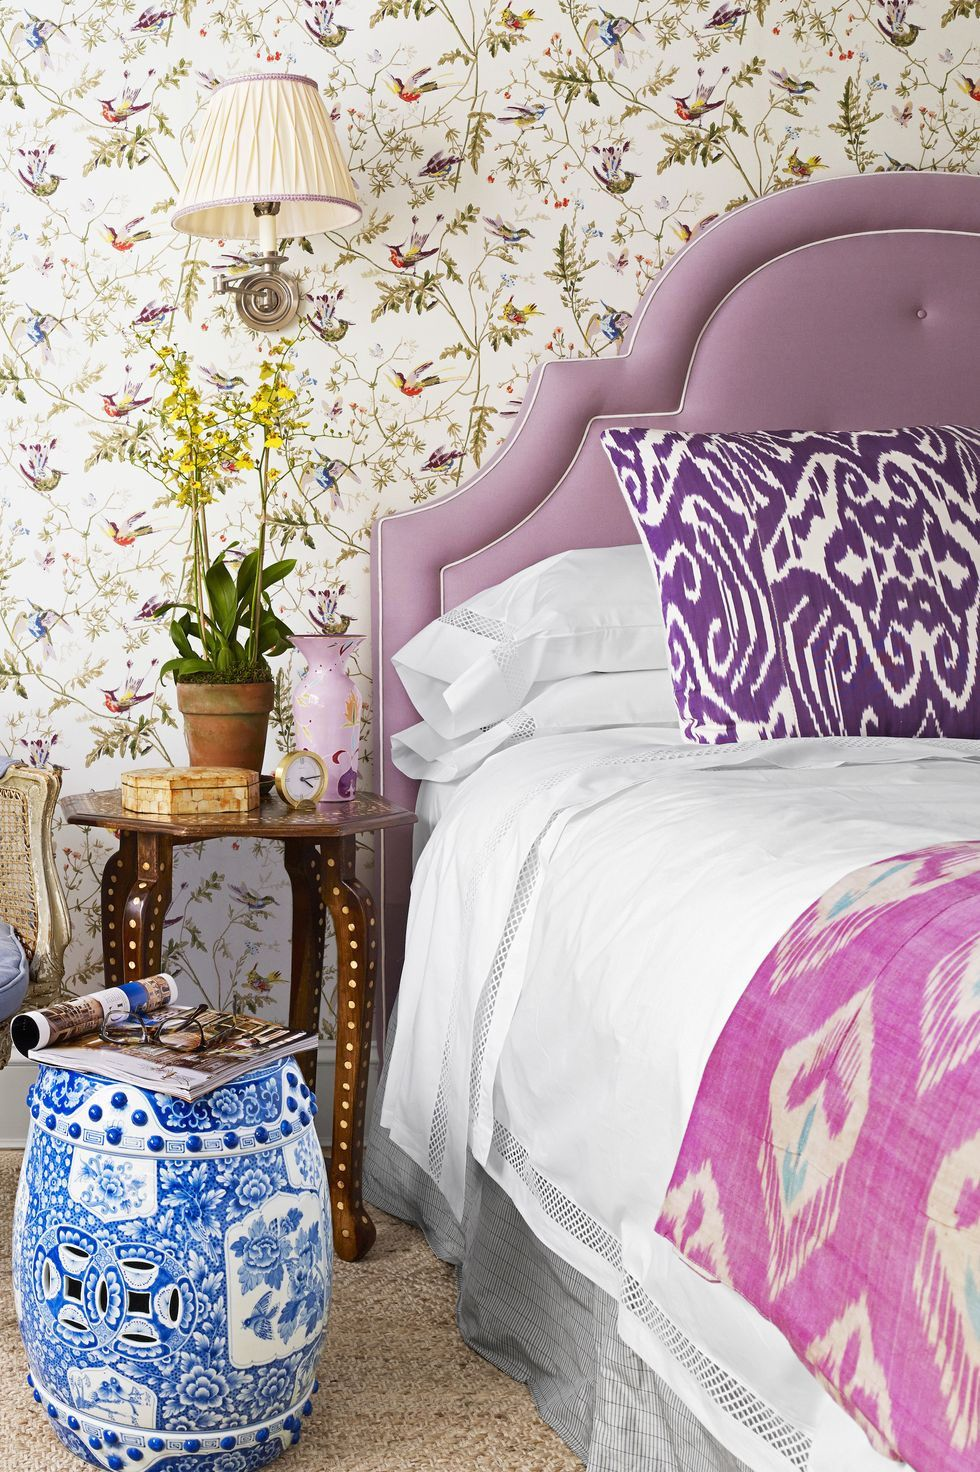 55 Fresh Spring Decorating Ideas to Usher In the New Season